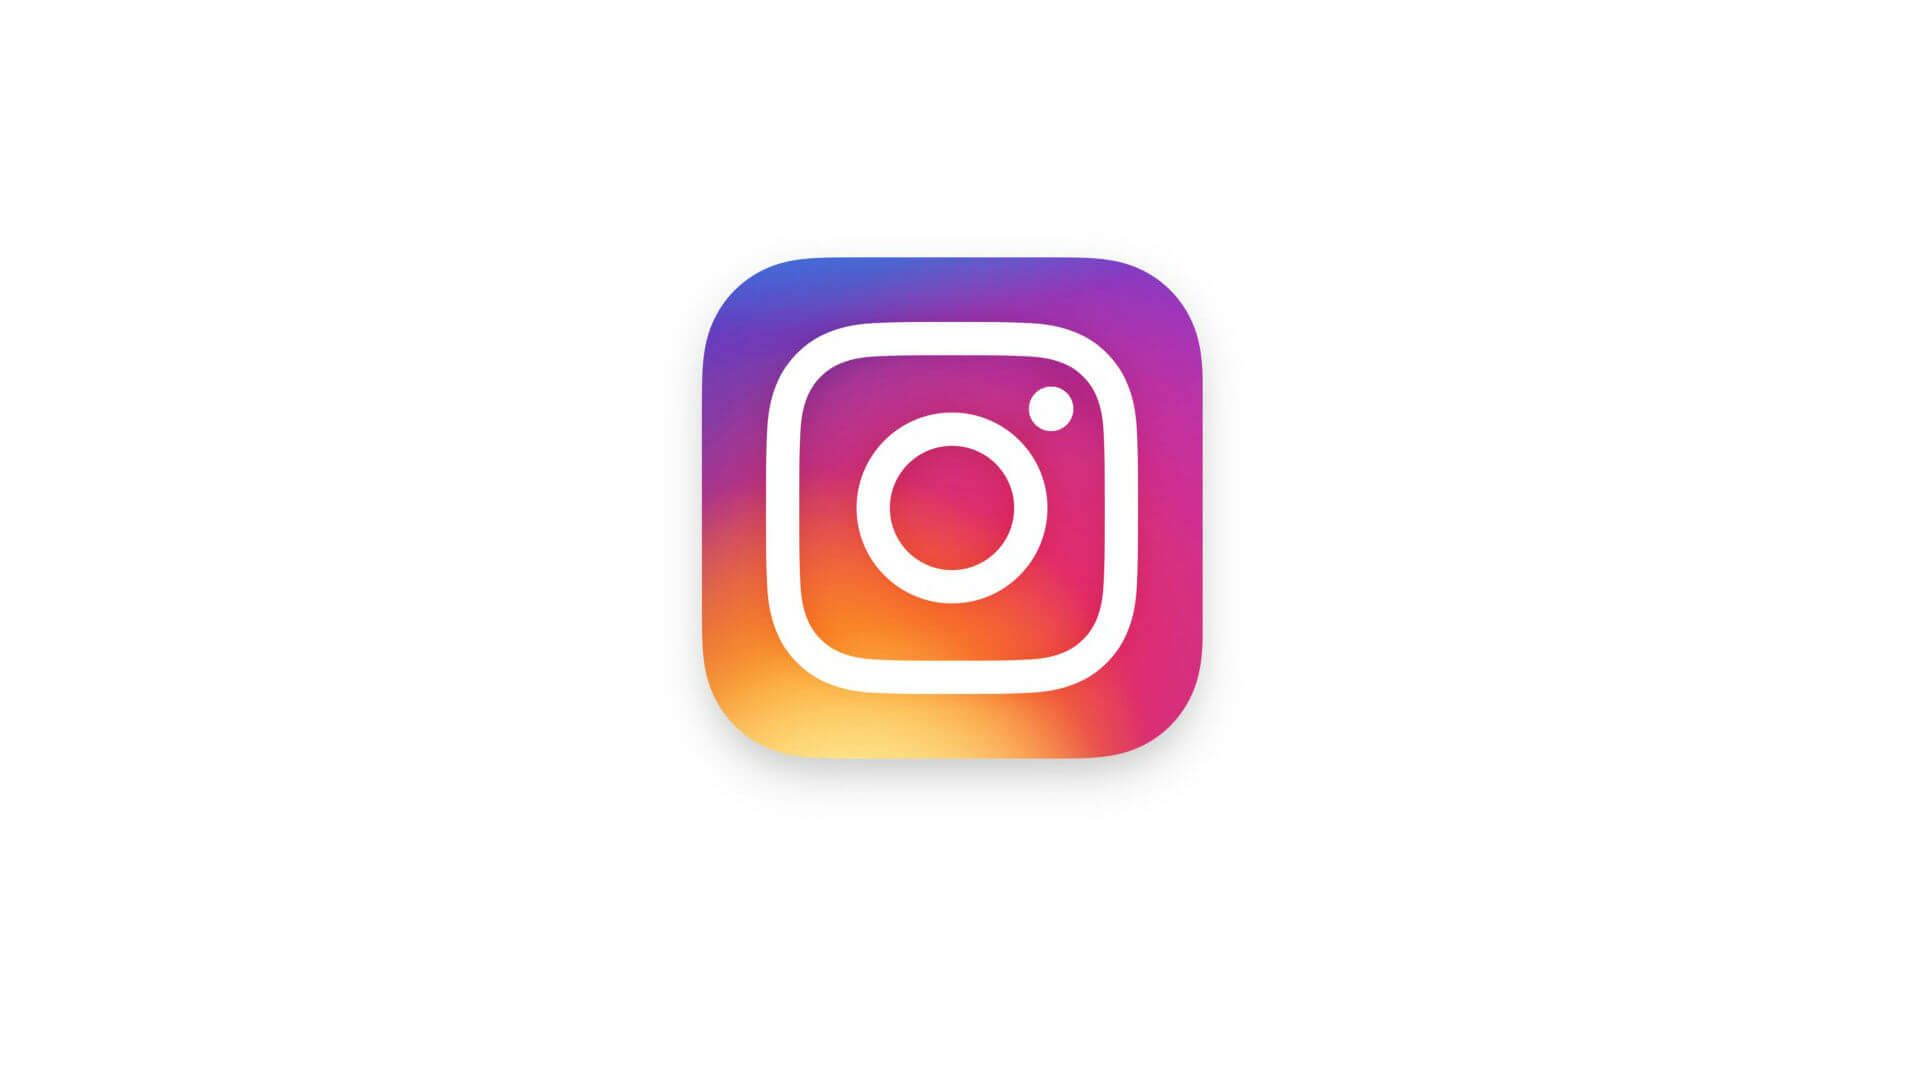 Instagram S Latest Updates Feature Live Video And Disappearing Media Instagram Logo New Instagram Instagram